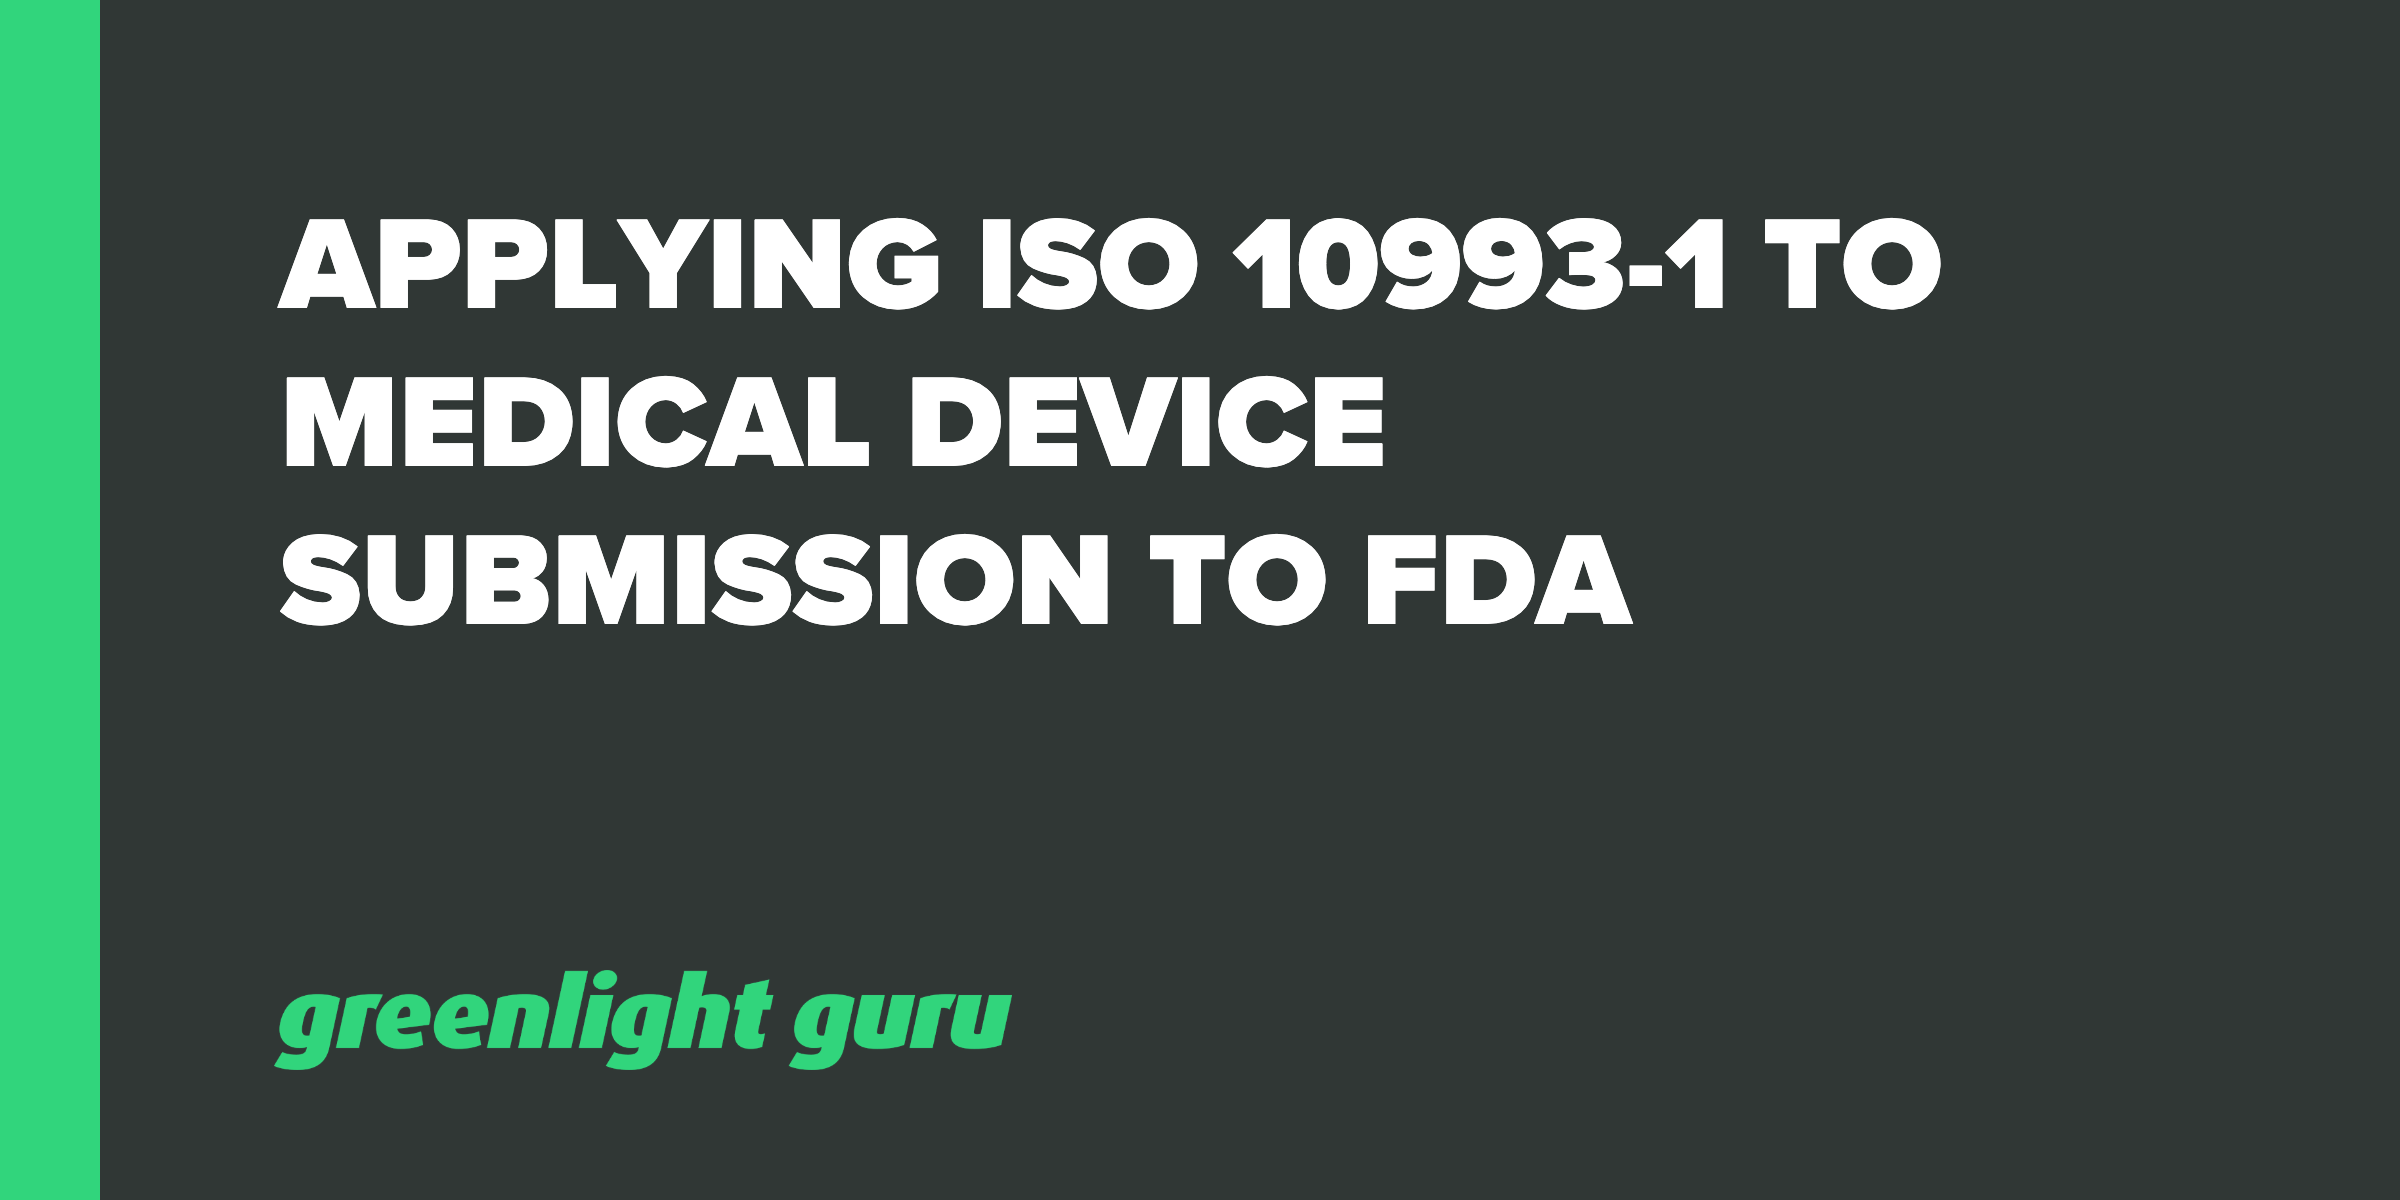 Applying ISO 10993-1 to Medical Device Submission to FDA - Featured Image